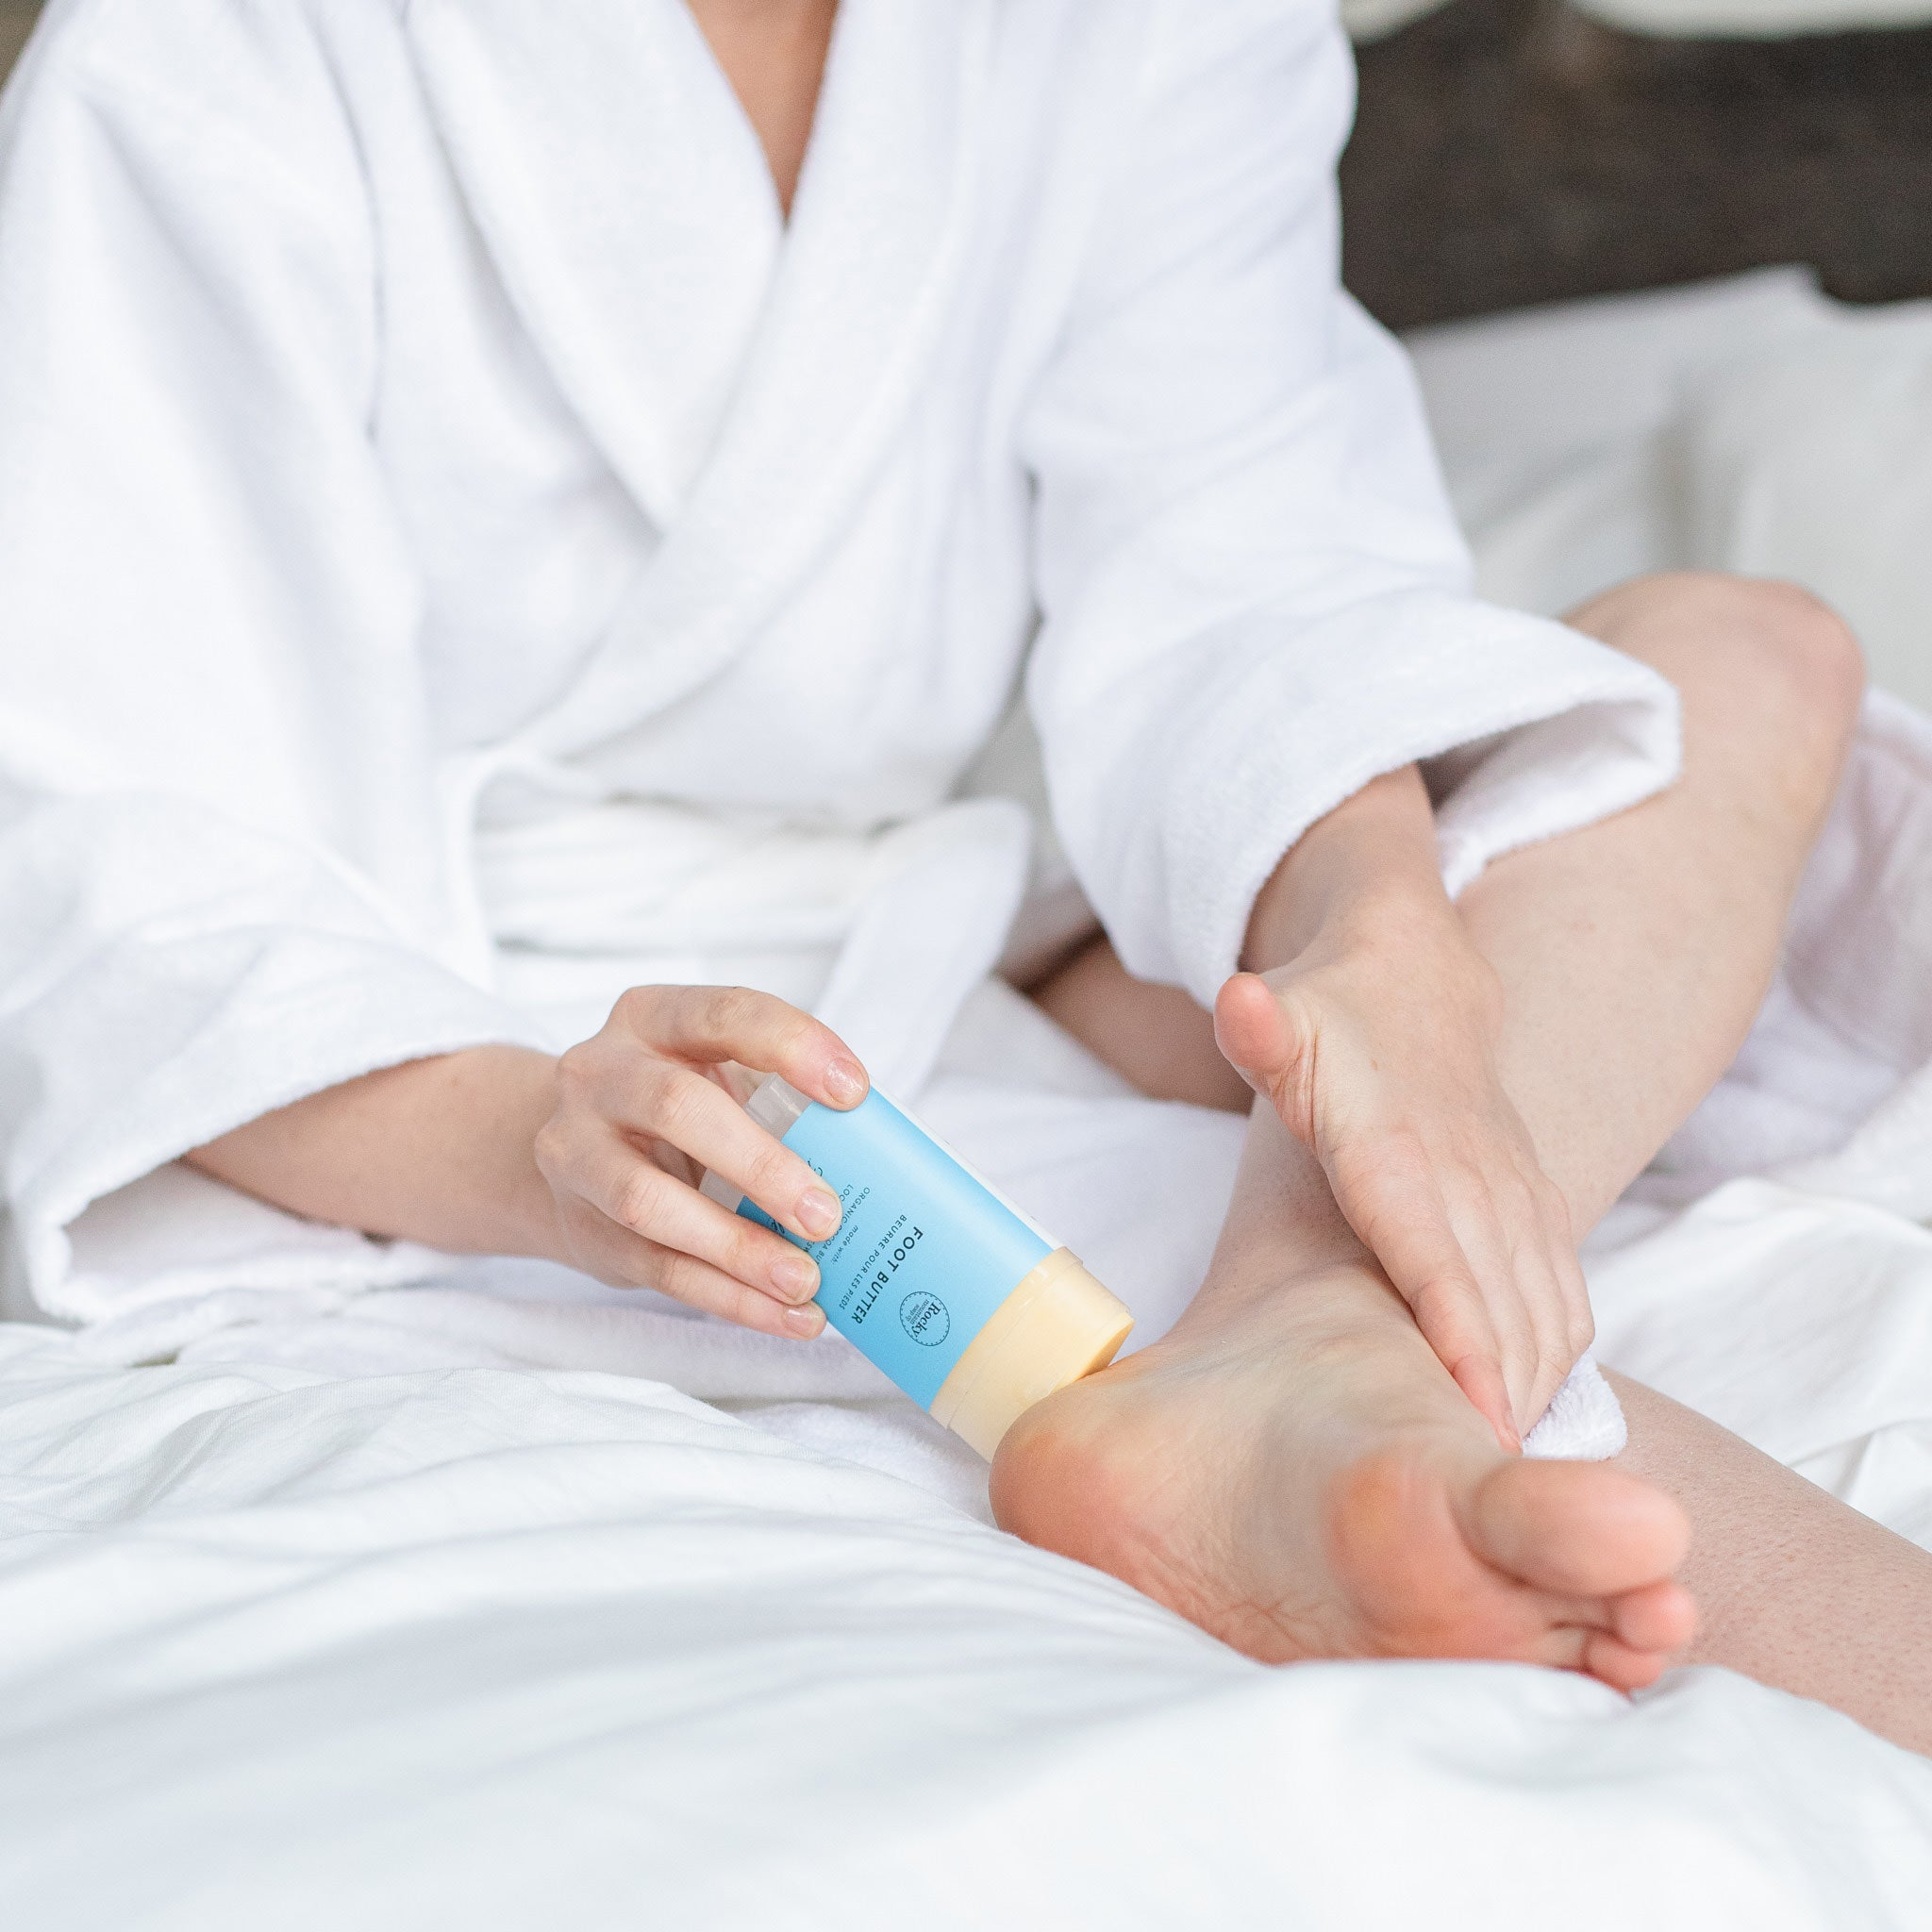 Image of woman in bath robe rubbing Foot Butter on her heel.